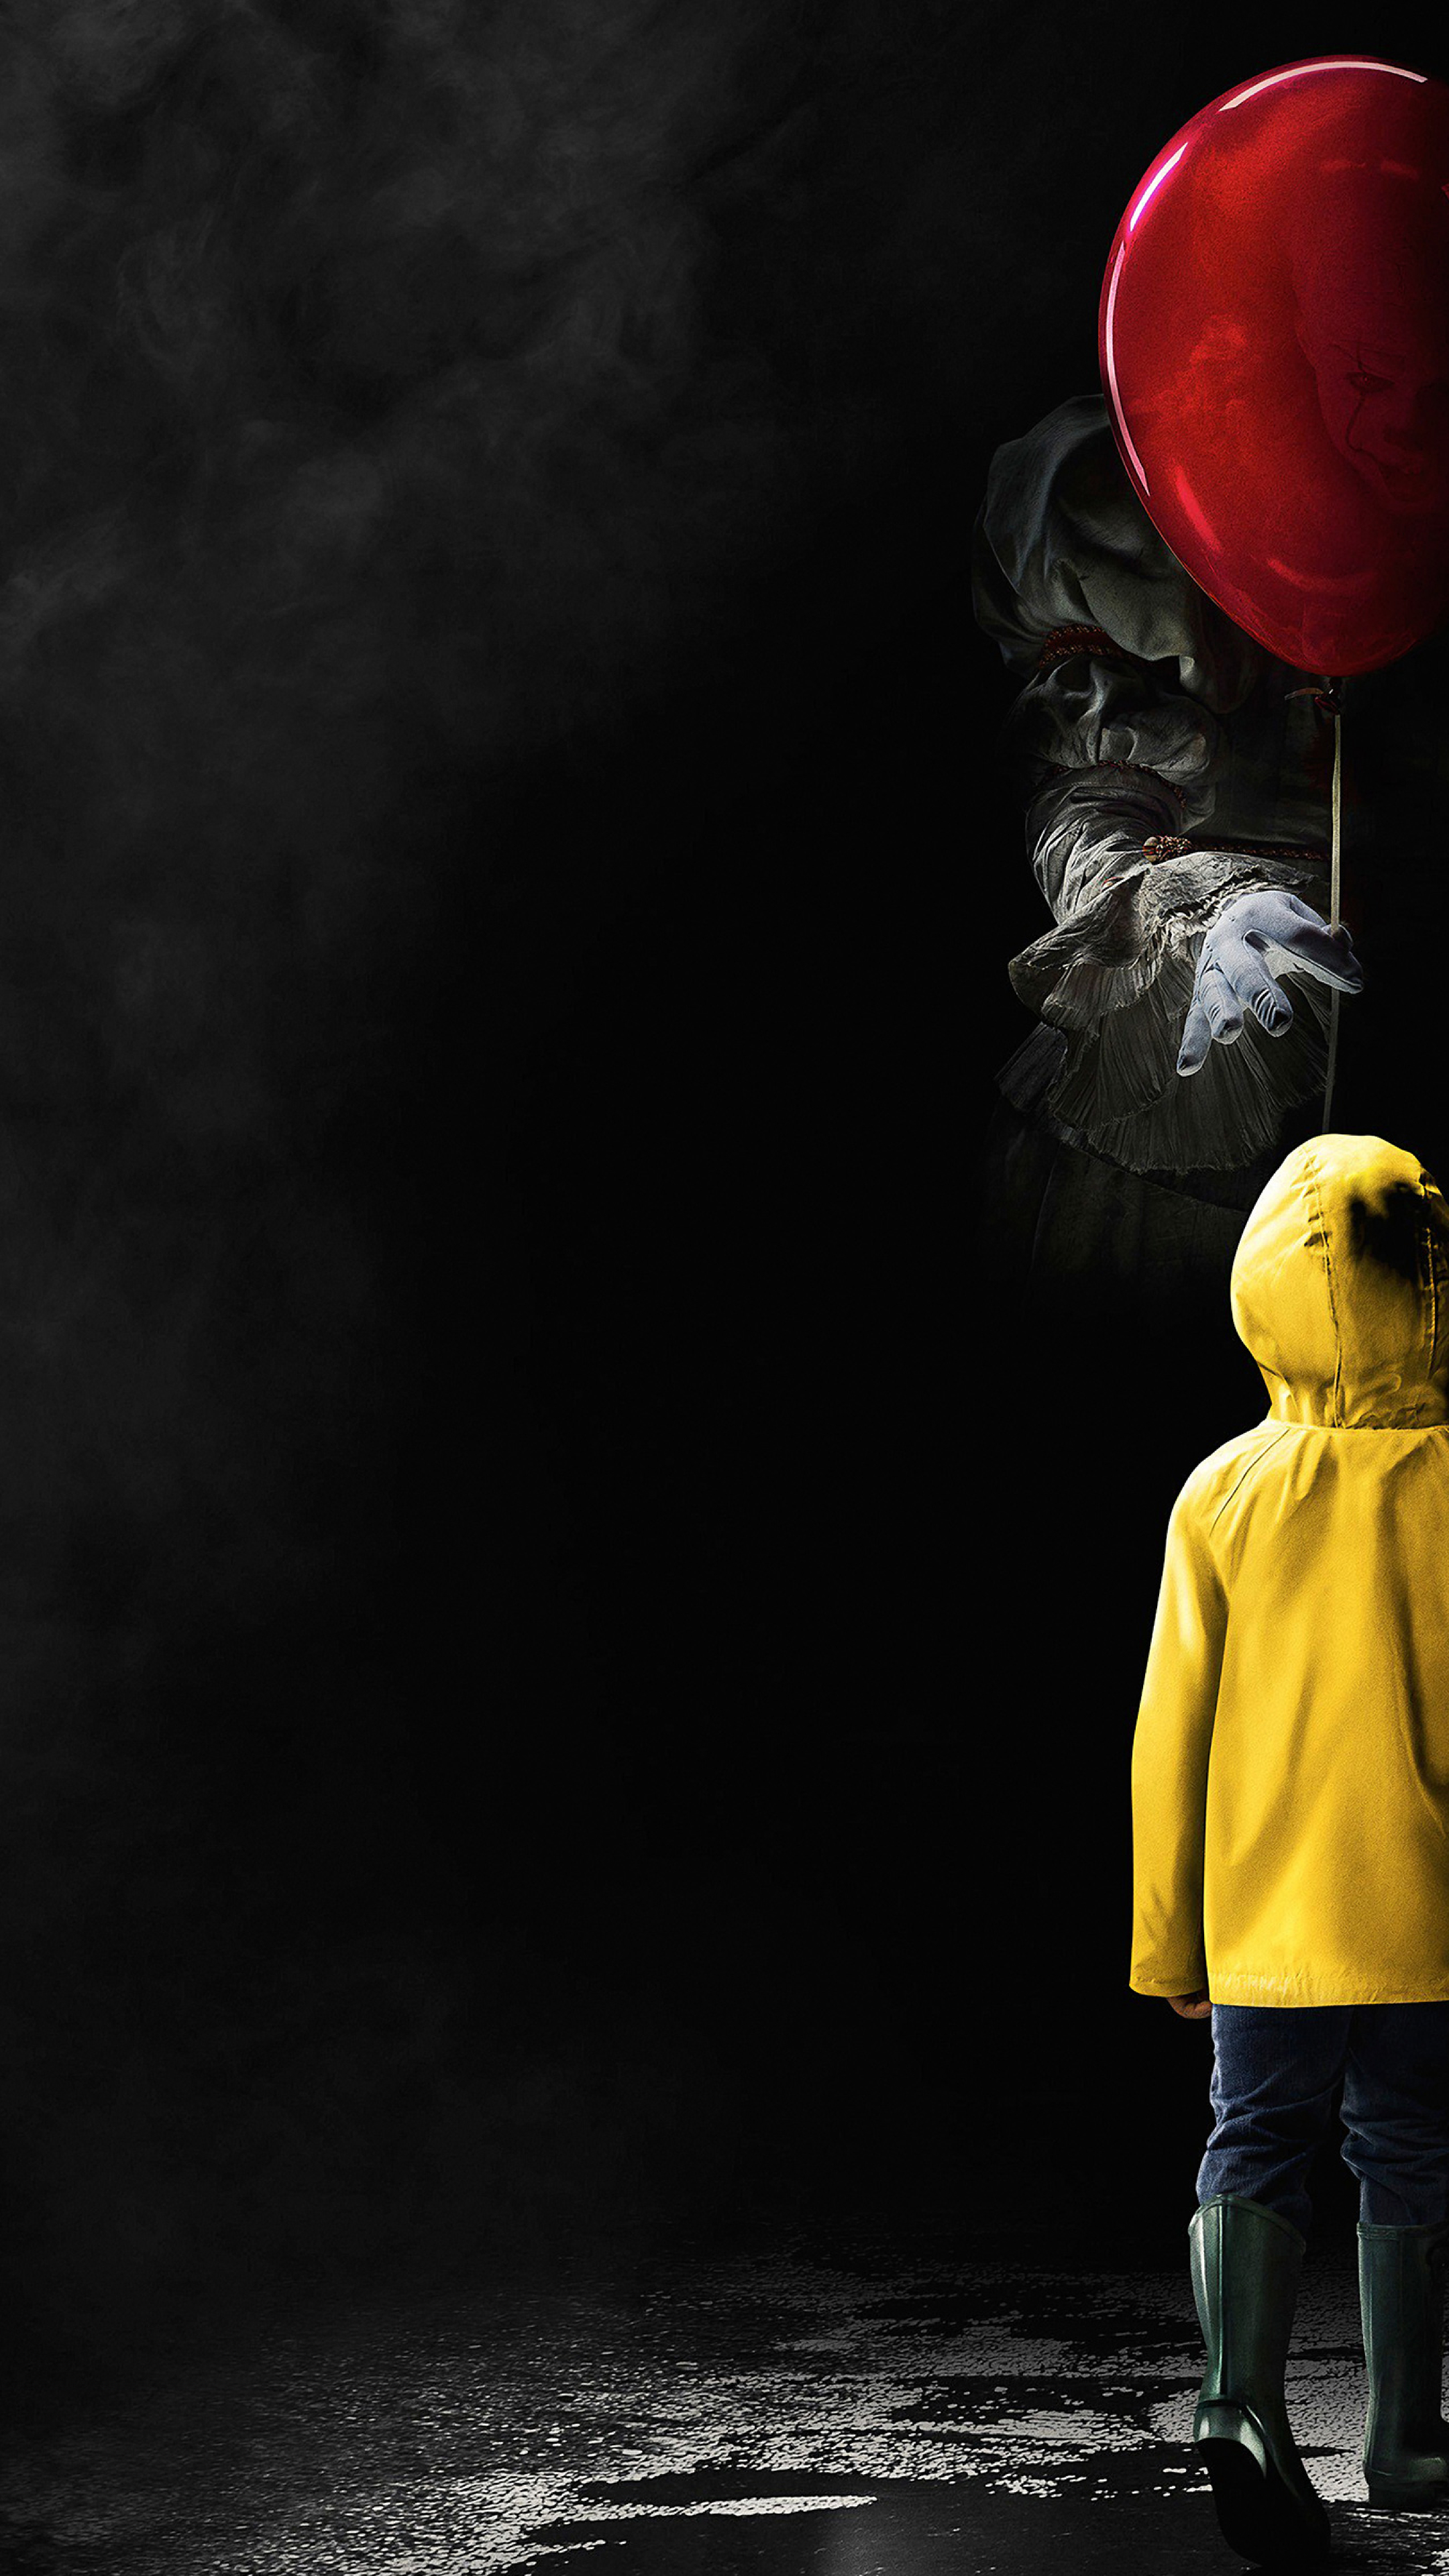 it 2017 horror movie poster, hd 4k wallpaper